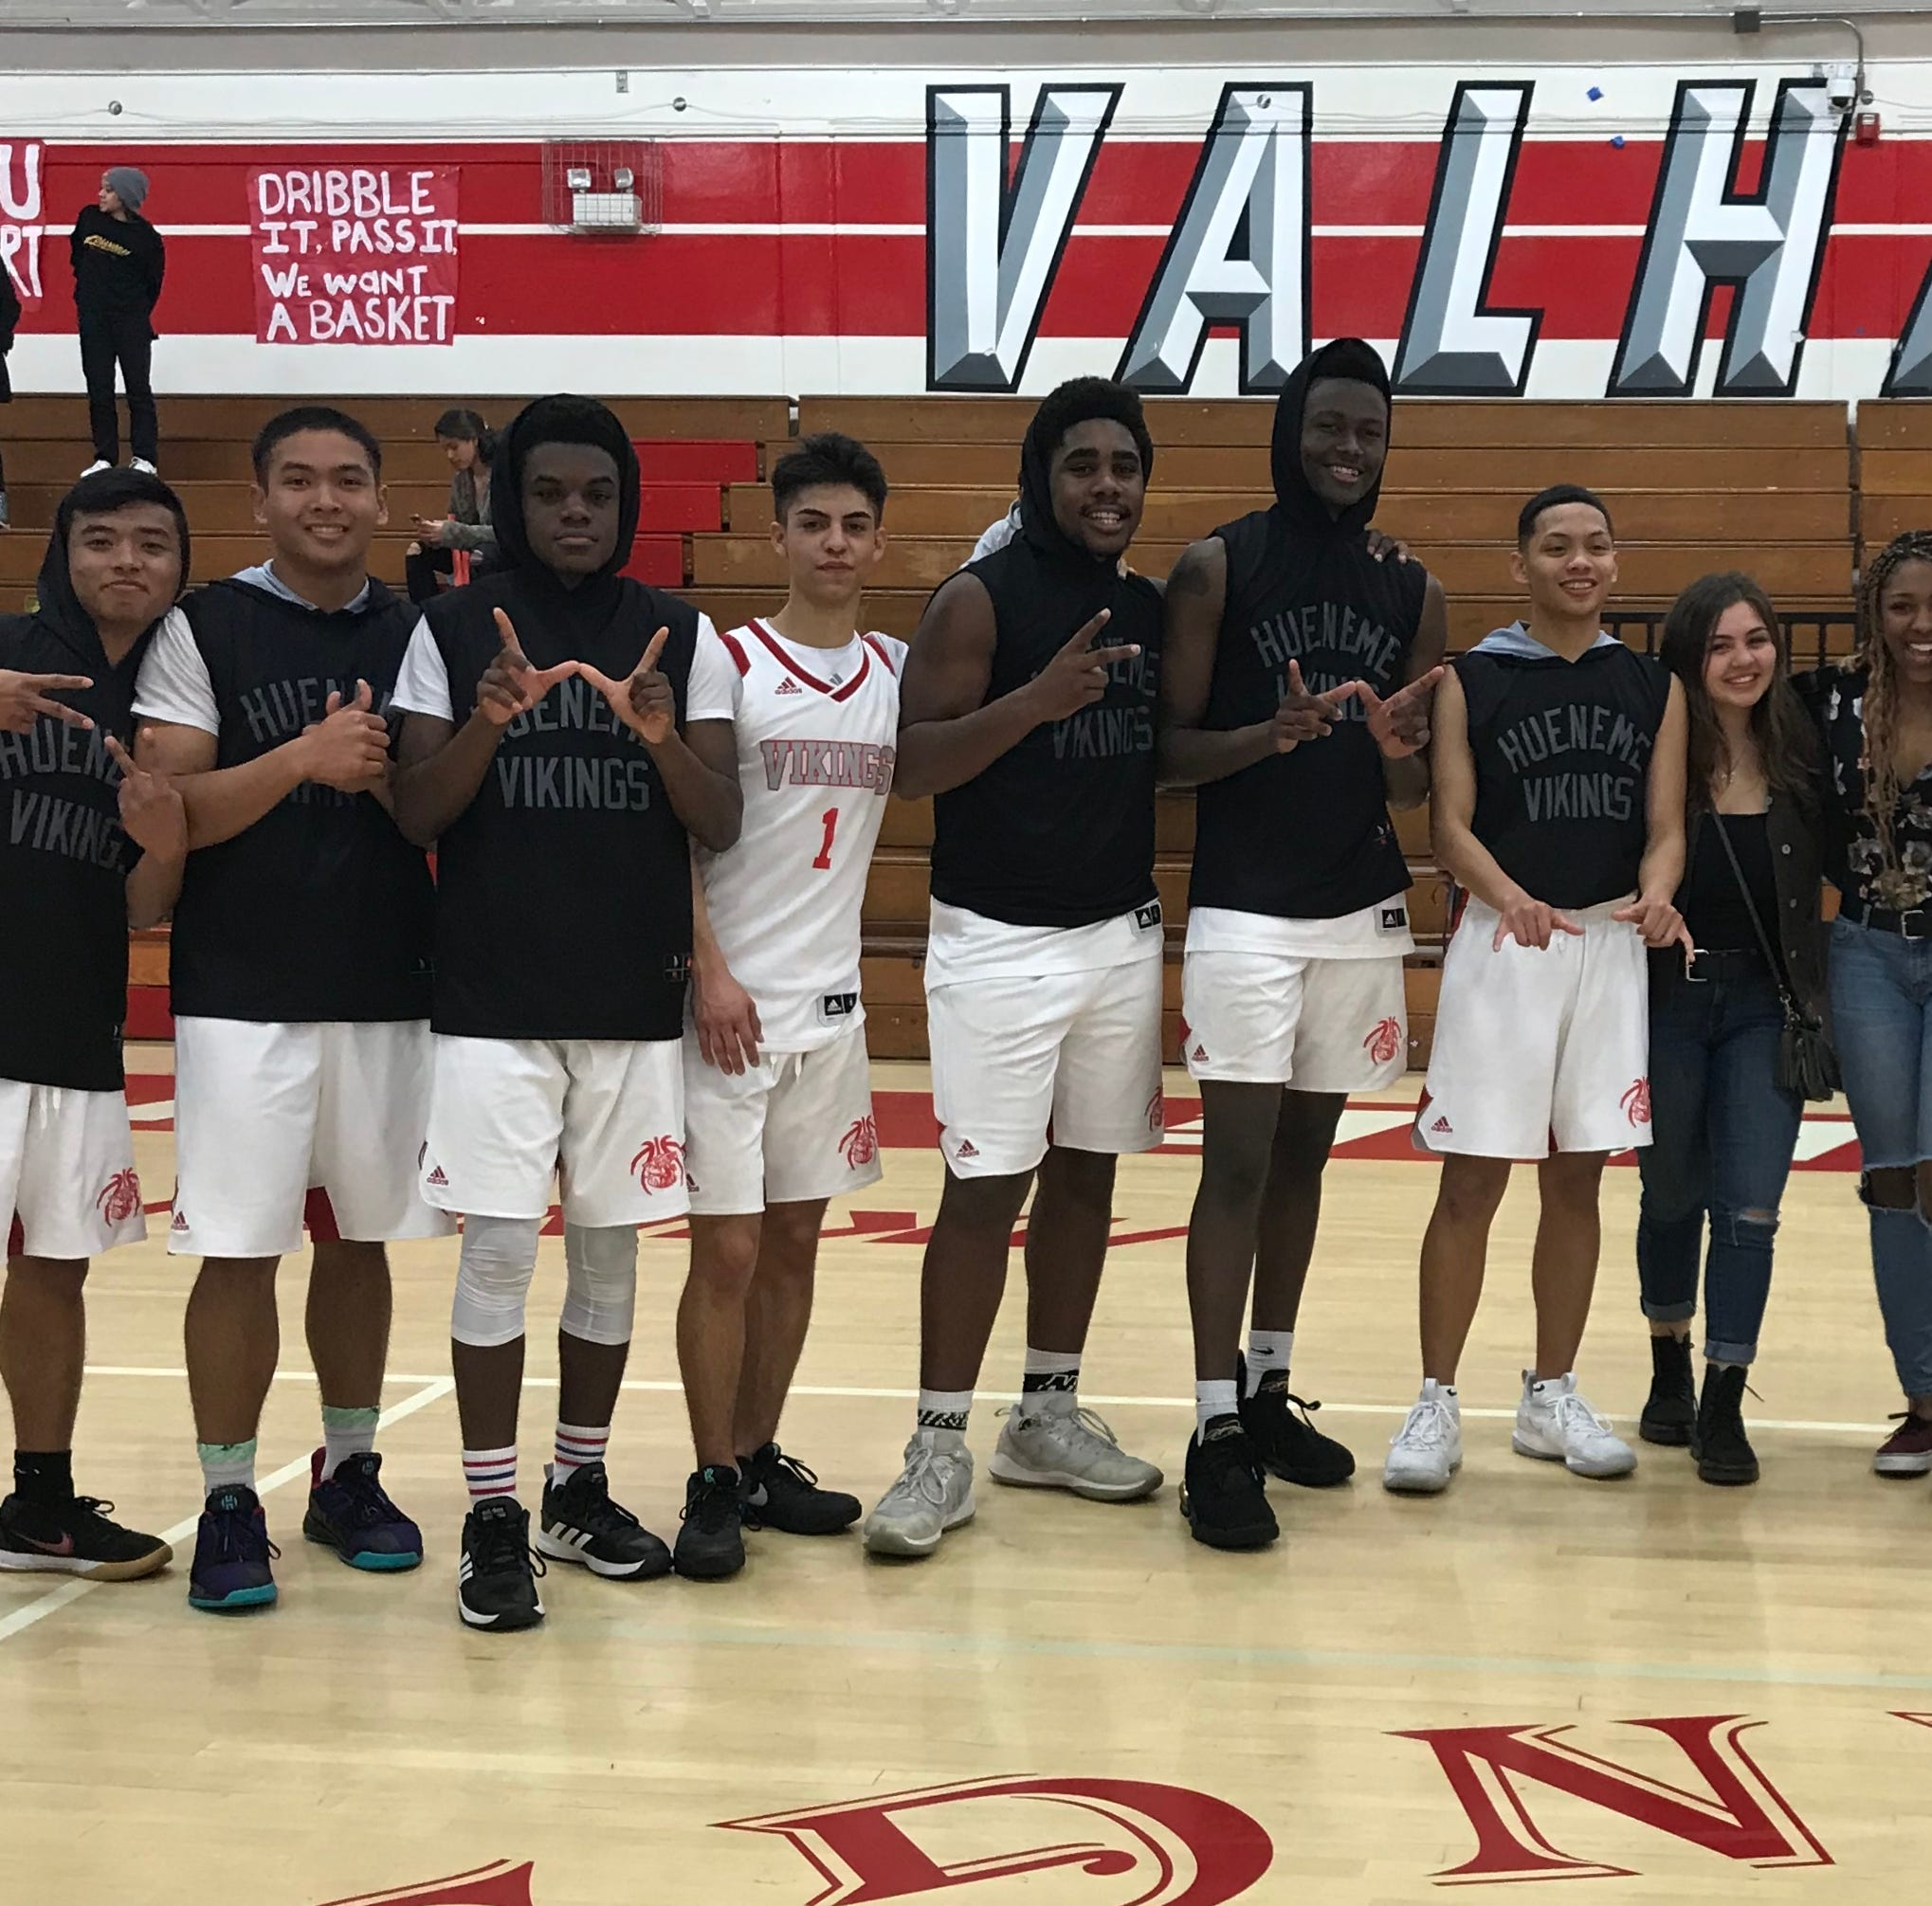 Hard work pays off for first-time semifinalist Hueneme High boys basketball team